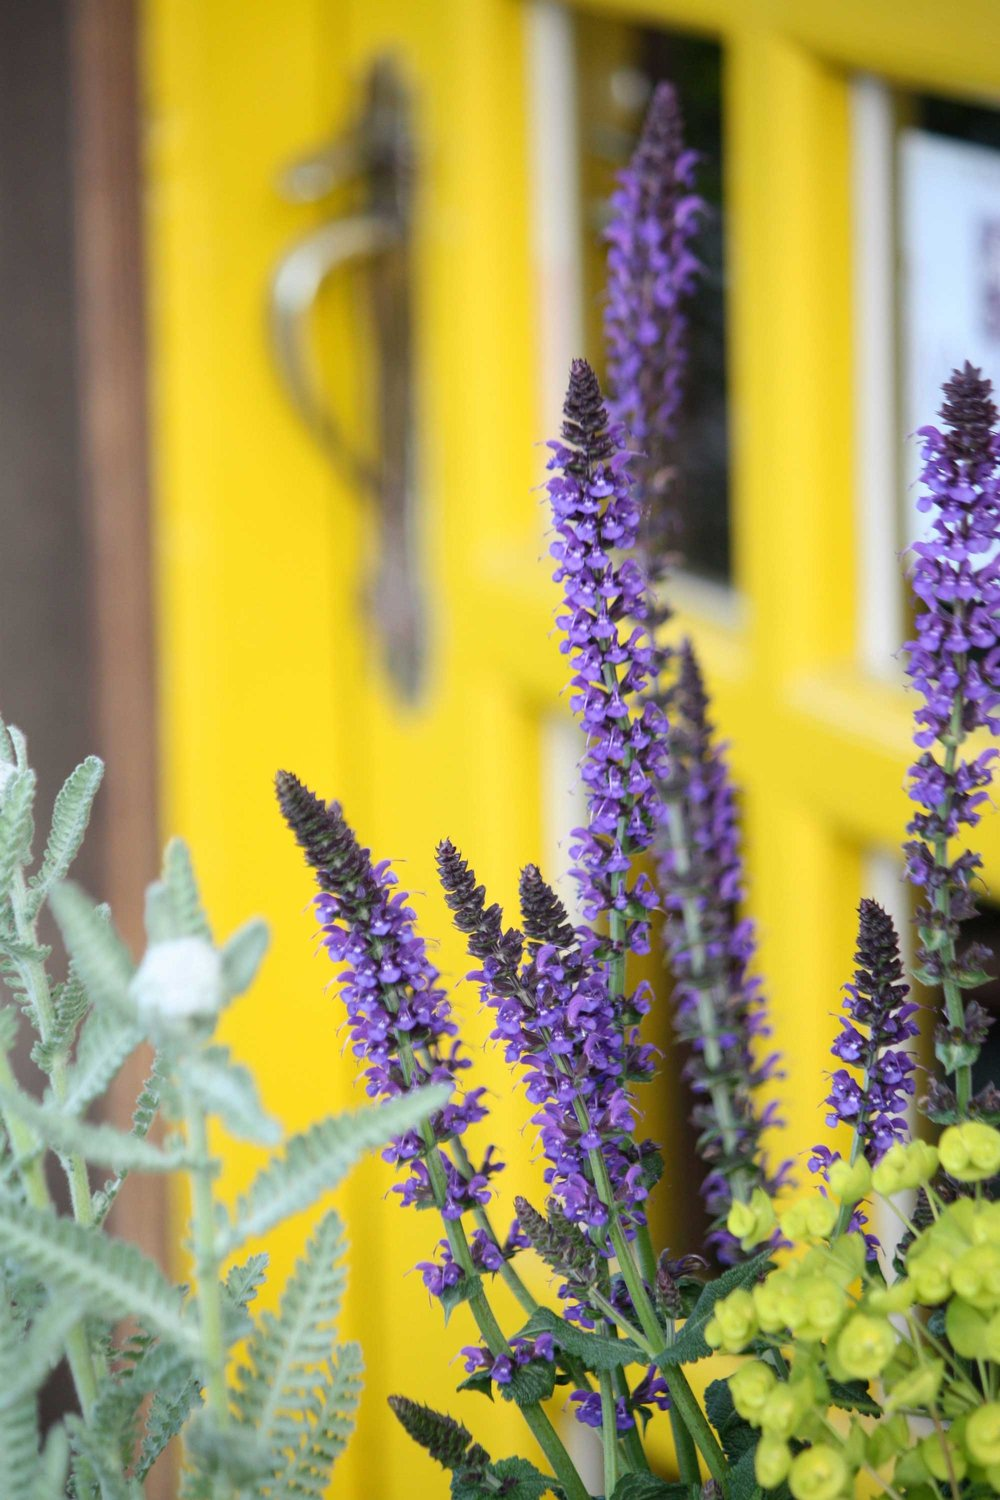 128_Purple-Lavender-and-Yellow-Door_rgb_opt_web.jpg